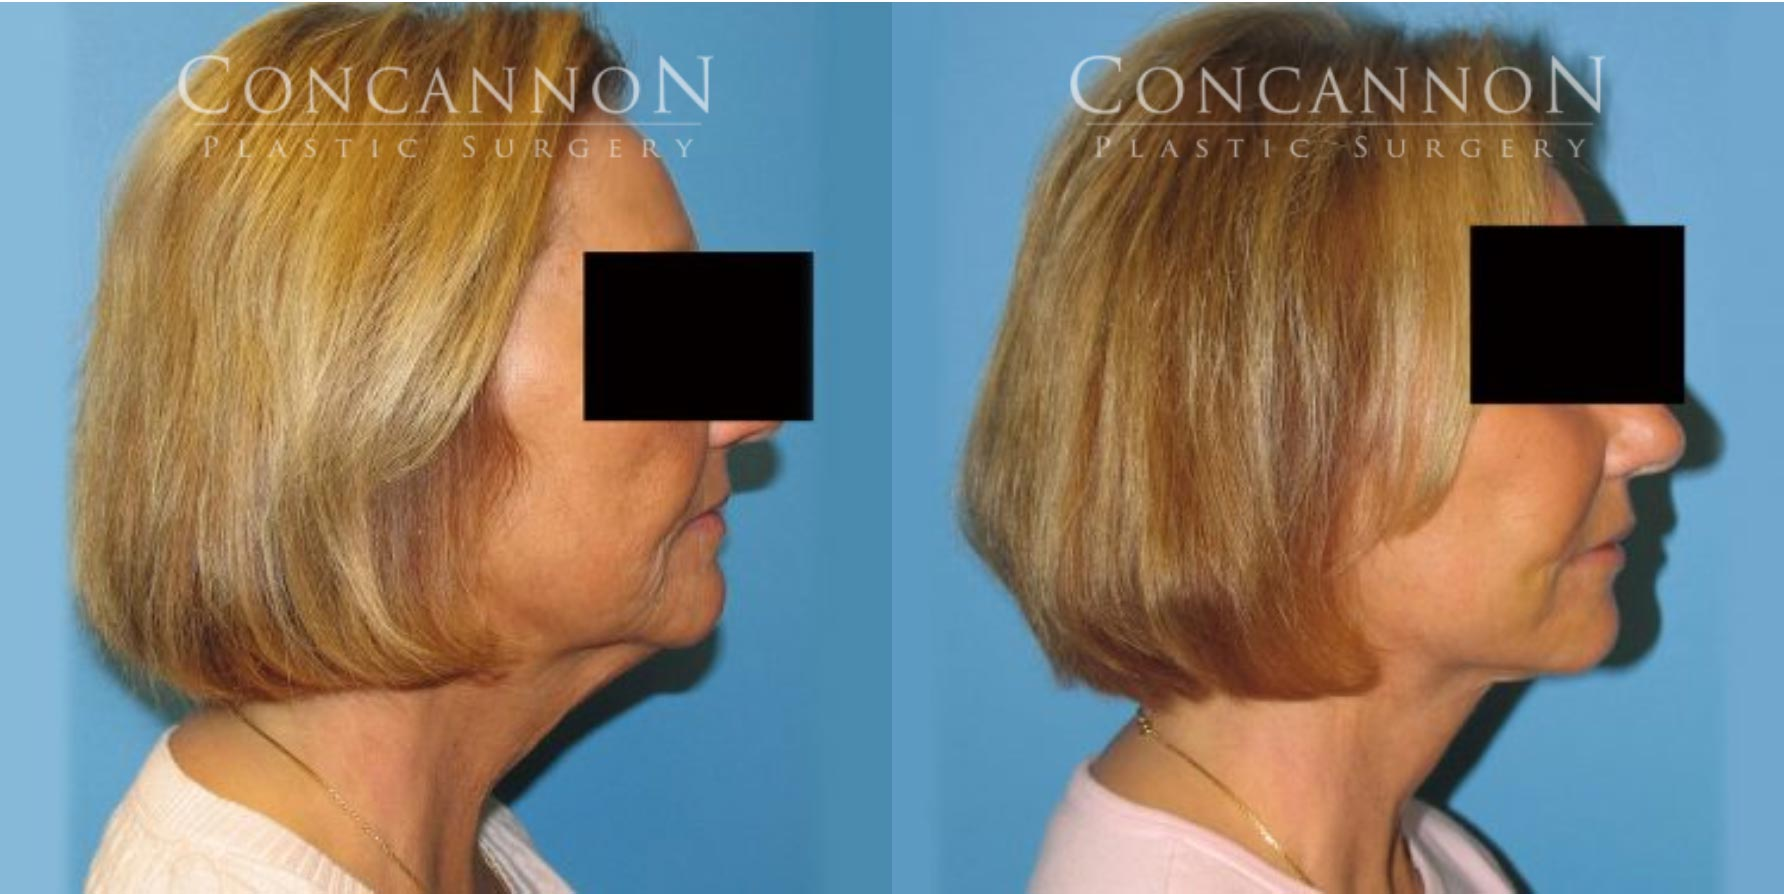 Before and After Facelift Procedure